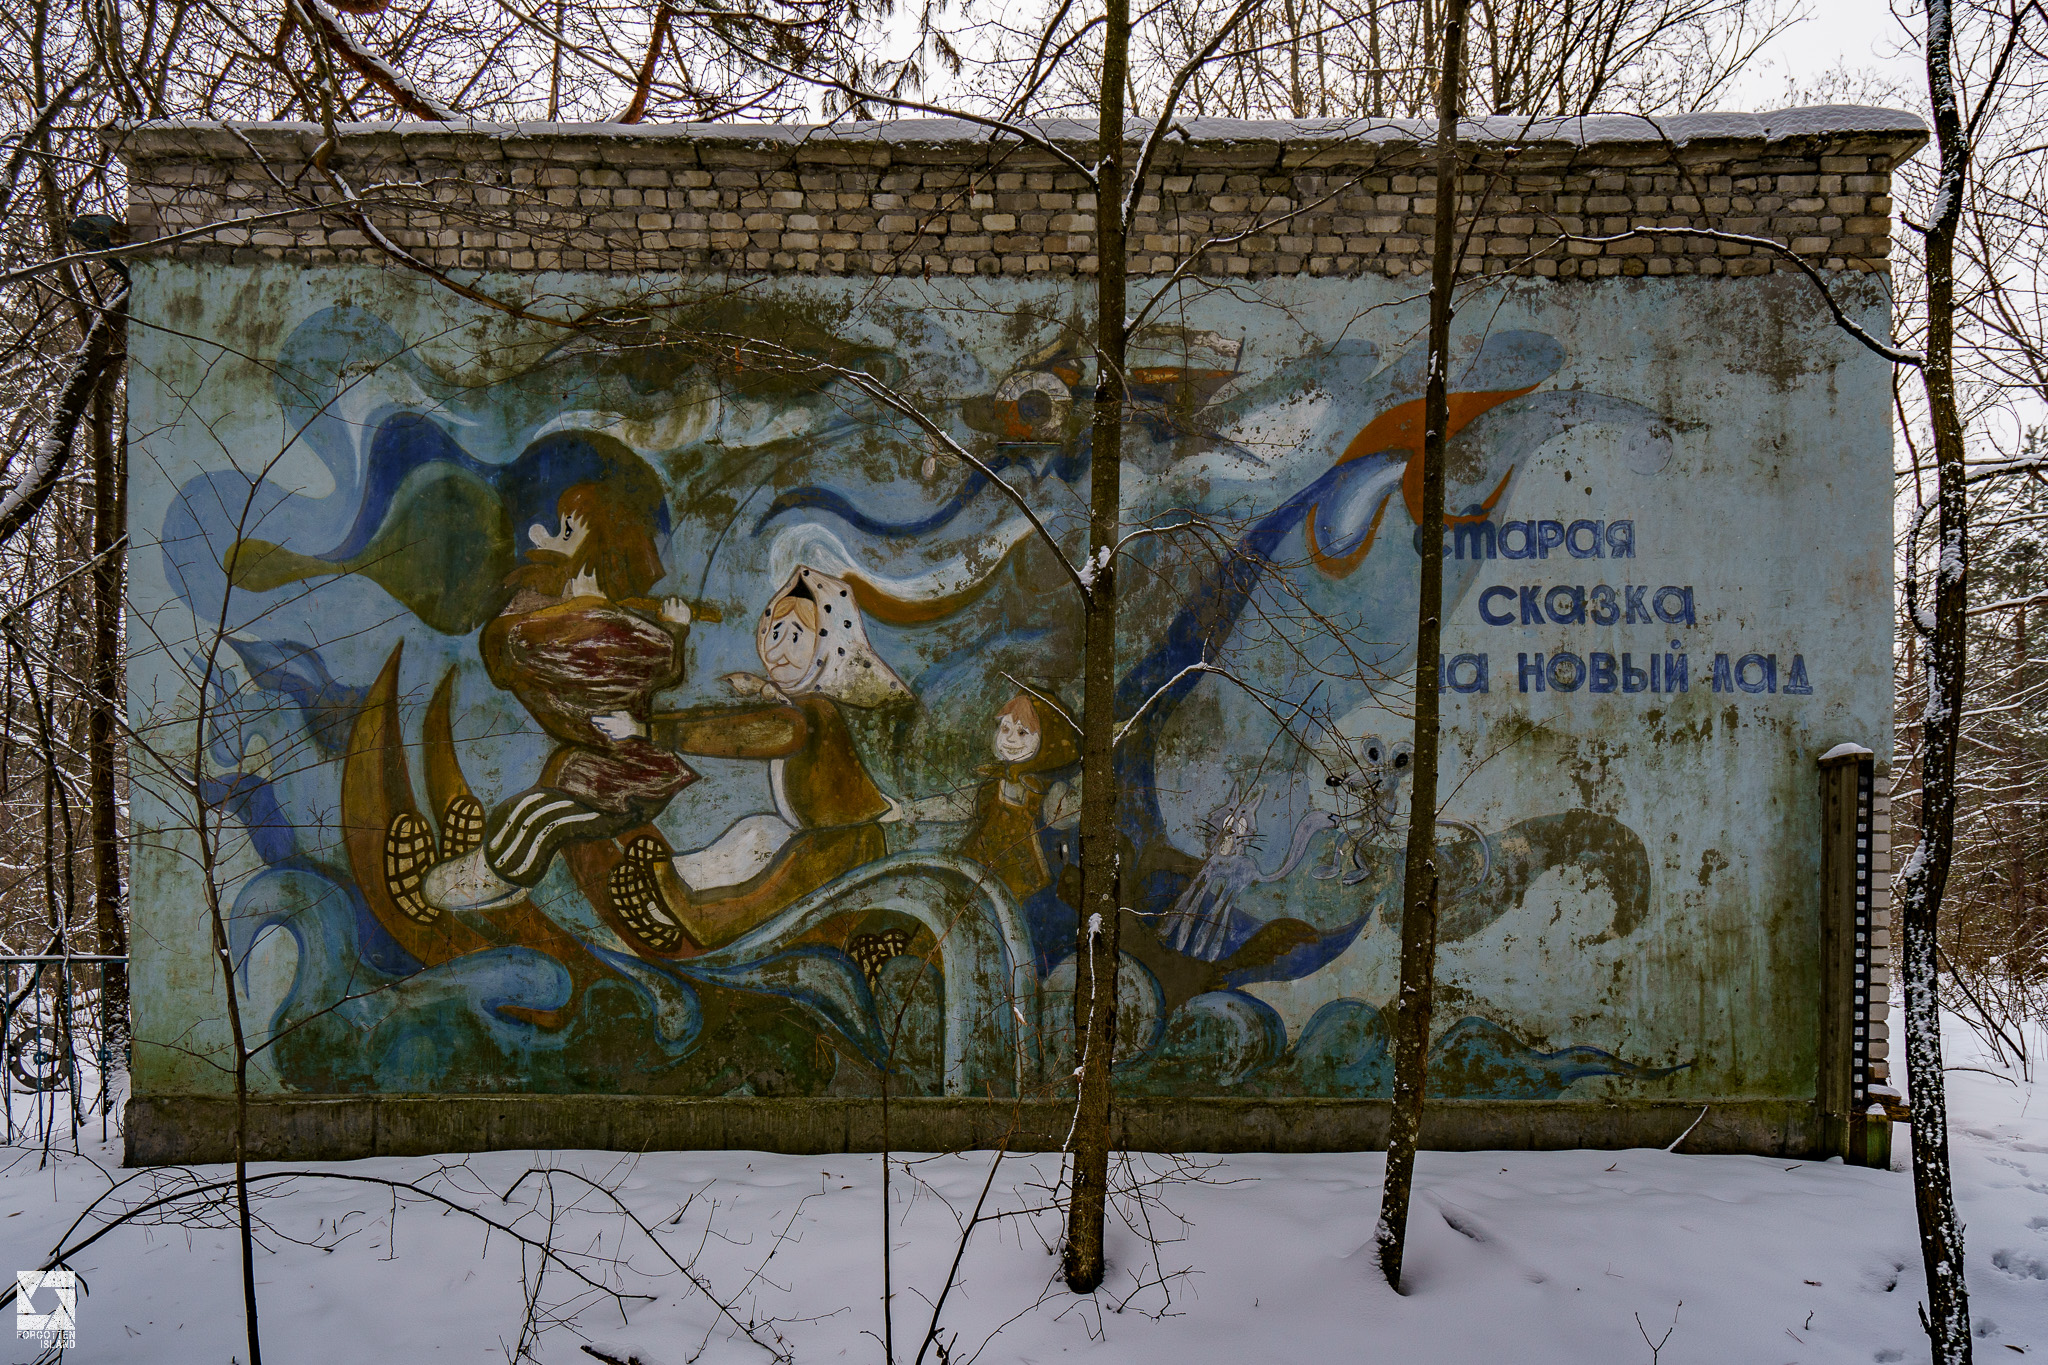 Chernobyl-2 Playground Artwork